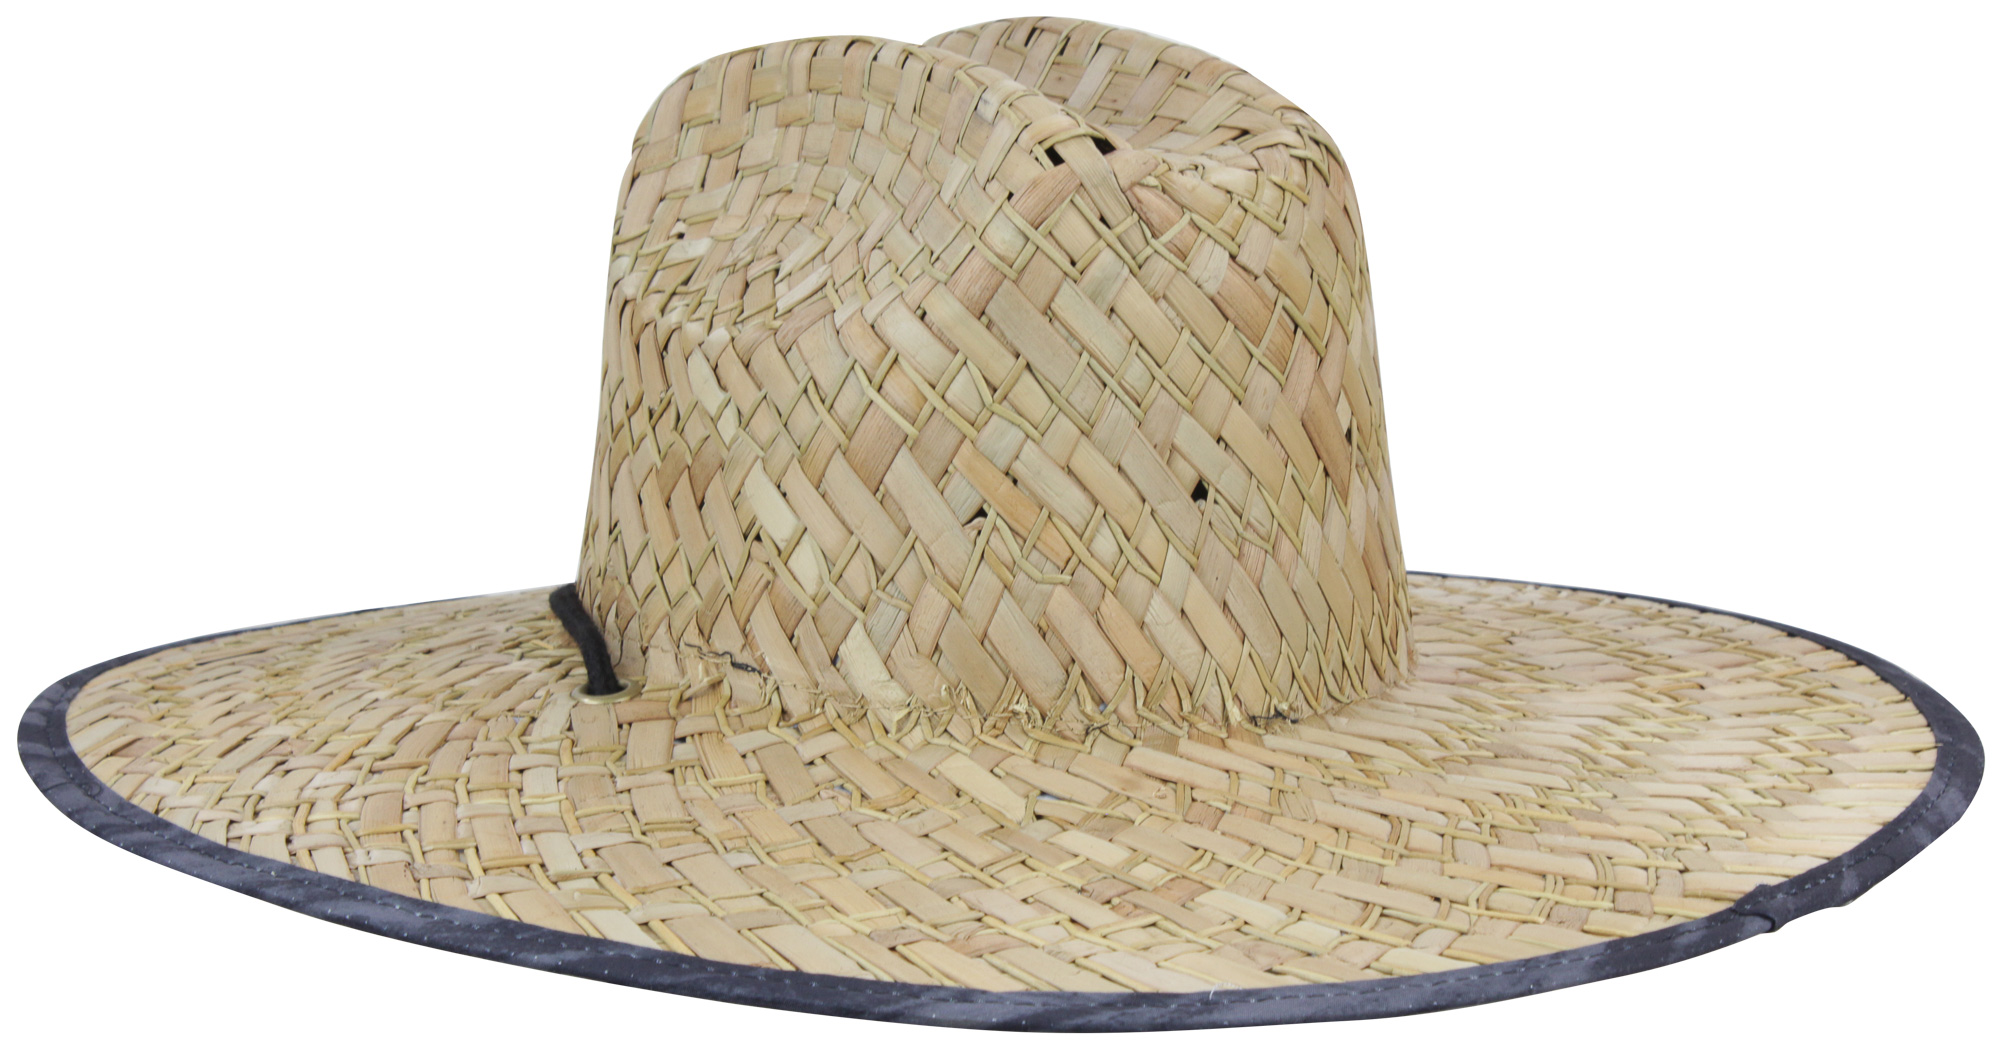 Quiksilver Mens Outsider Repent Wide Brim Lifeguard Straw Sun Hat ... f50557941c68